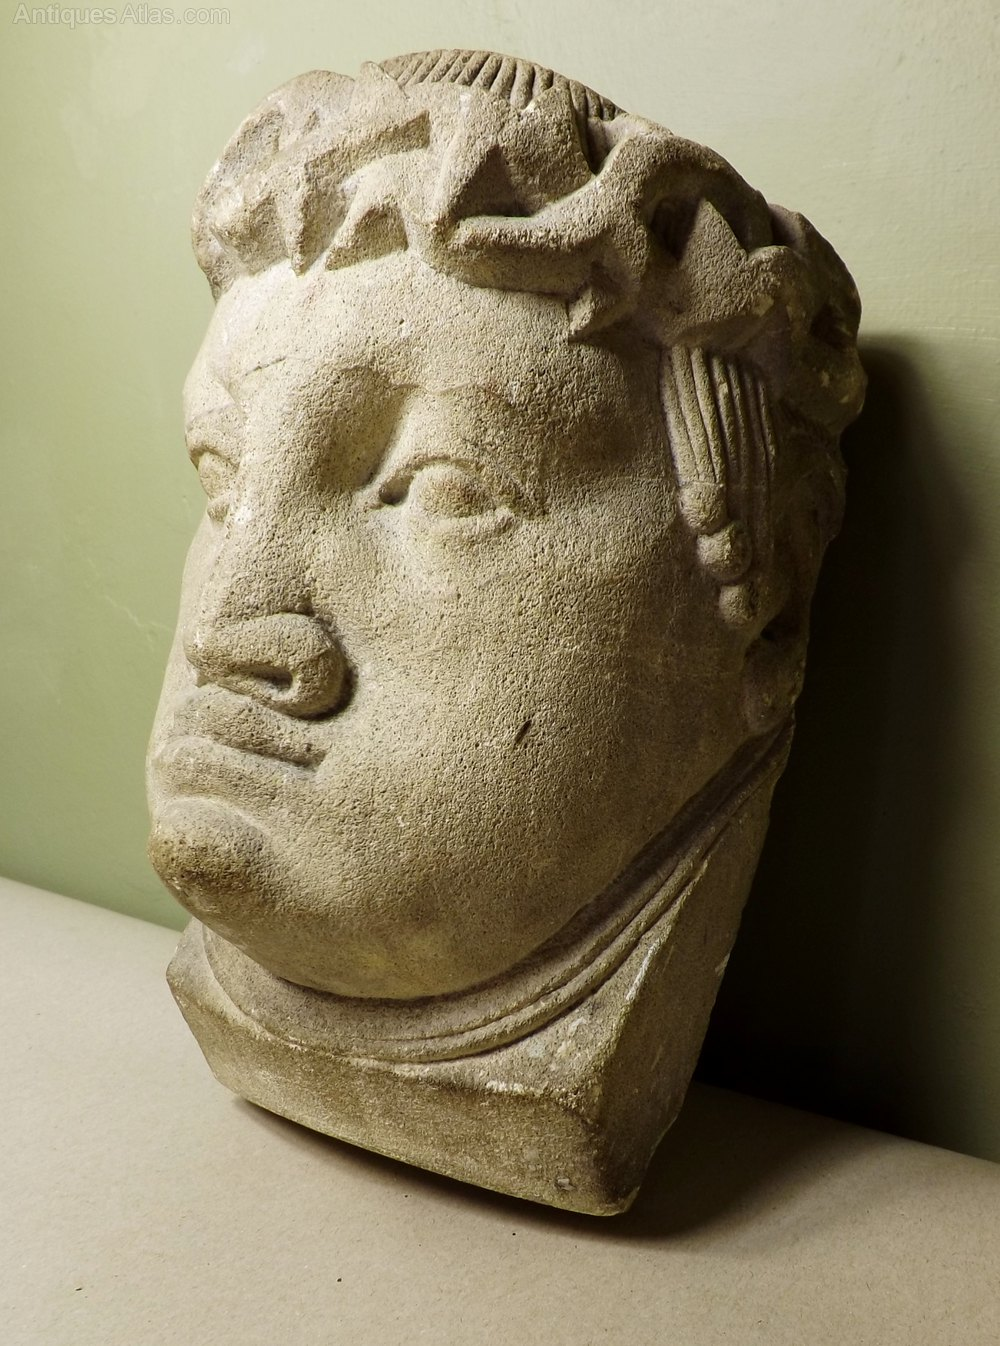 Antiques atlas carved stone head